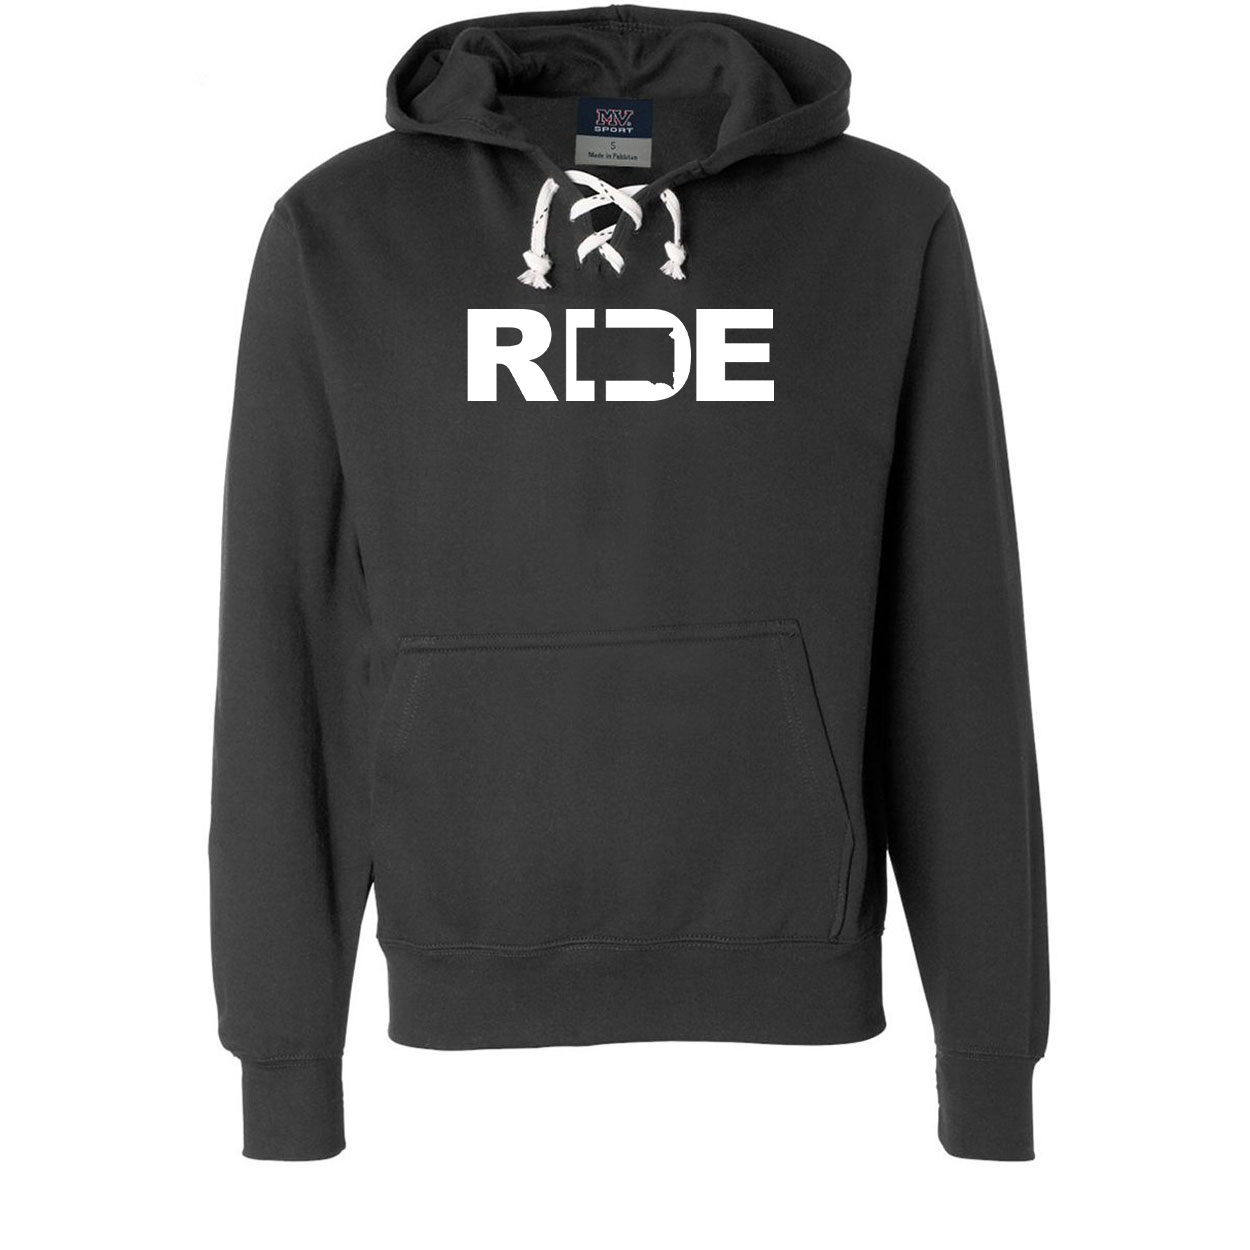 Ride South Dakota Classic Unisex Premium Hockey Sweatshirt Black (White Logo)